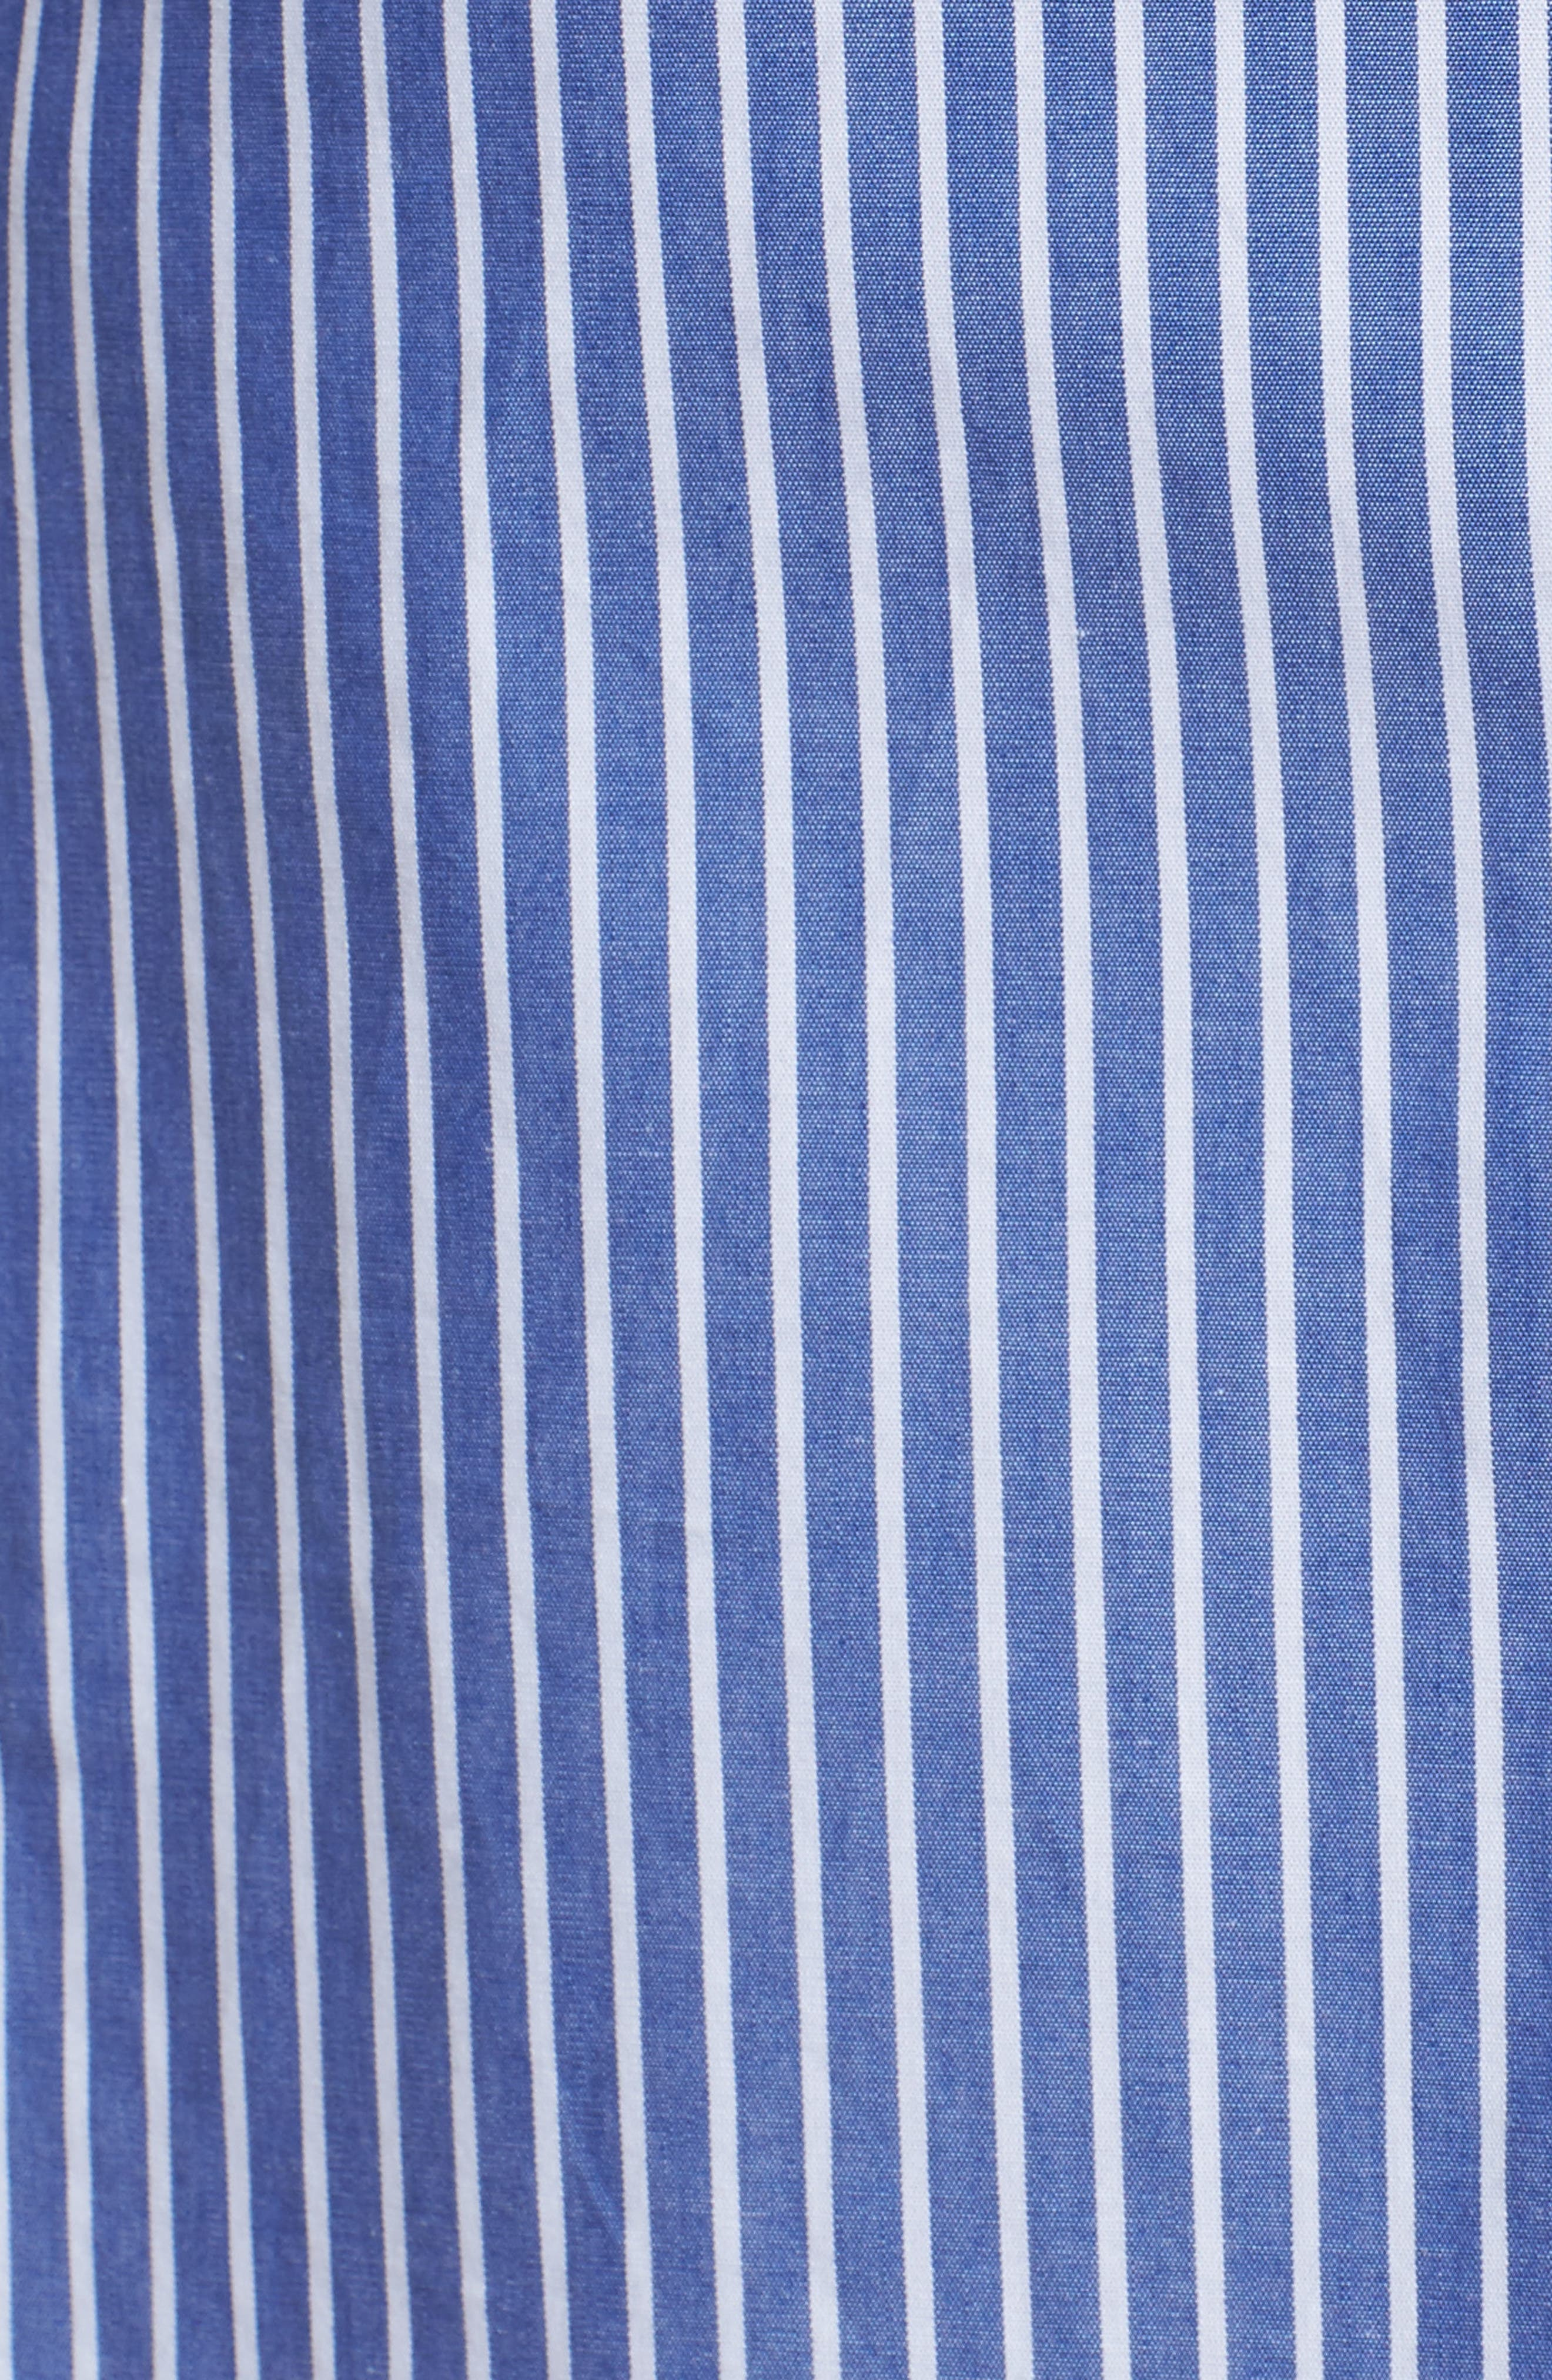 Tie Front Stripe Shirtdress,                             Alternate thumbnail 5, color,                             Blue White Stripe